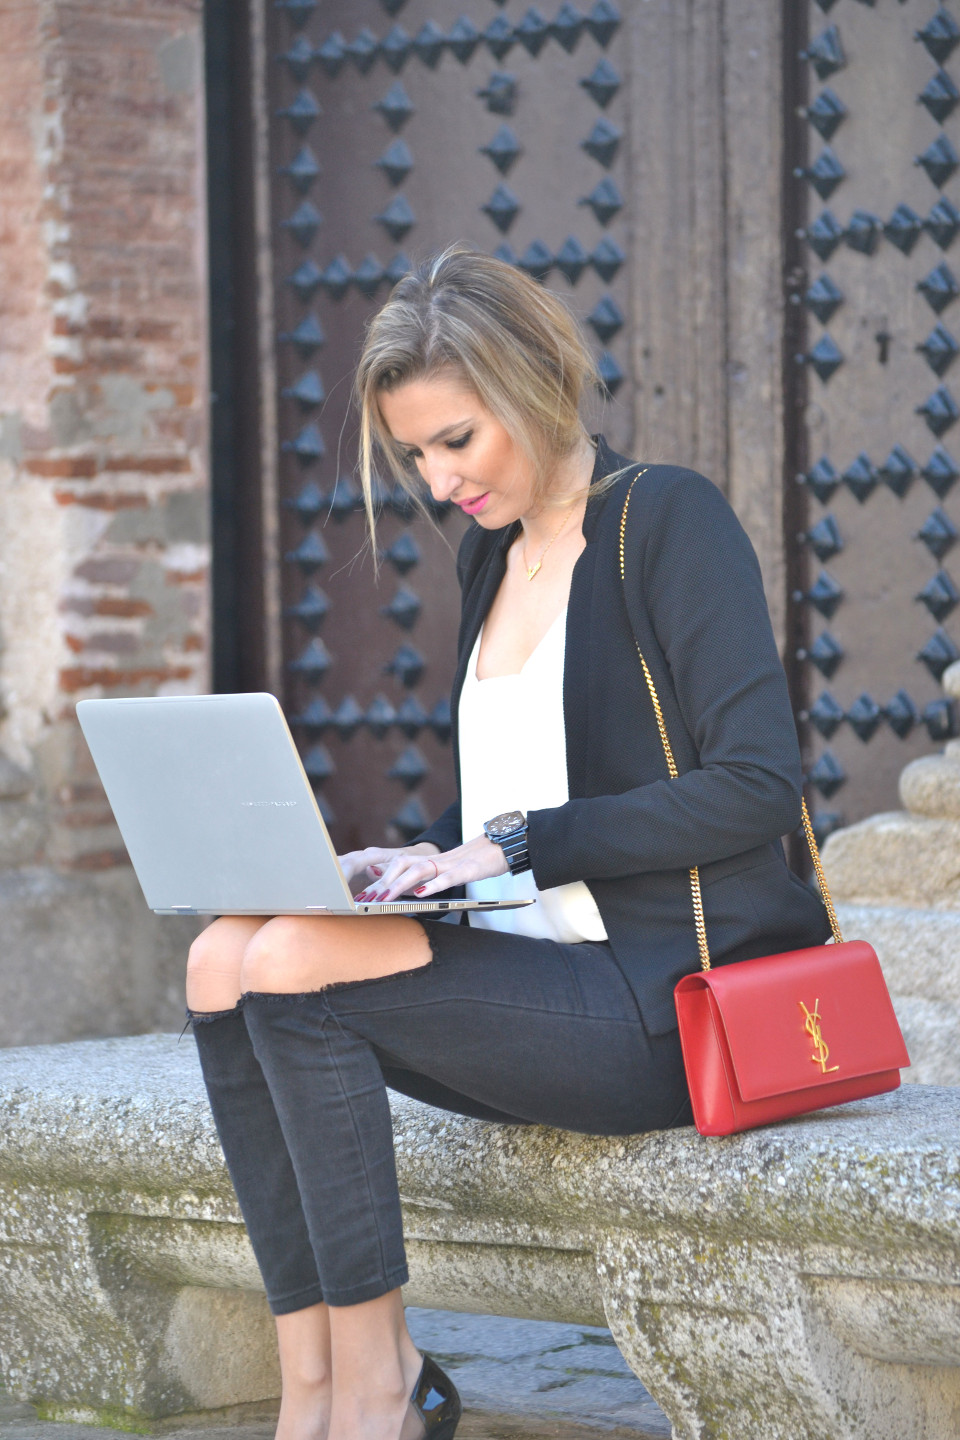 HP_Spectre_360_Ripped_Jeans_Yves_Saint_Laurent_Lara_Martin_Gilarranz_Bymyheels (2)